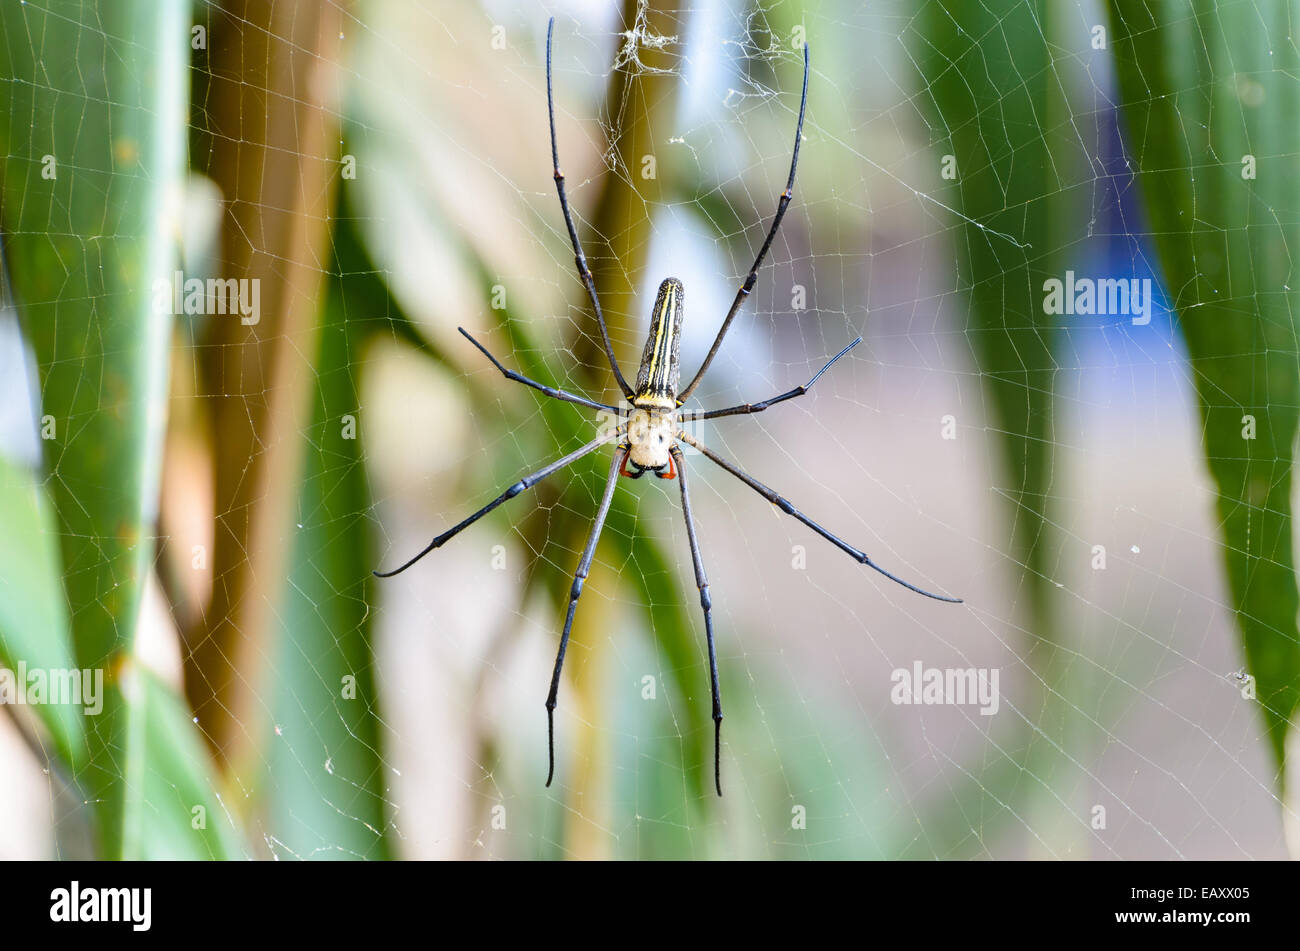 Golden Orb Spider (Nephila pilipes) waiting for prey on webs in the wild, Thailand - Stock Image